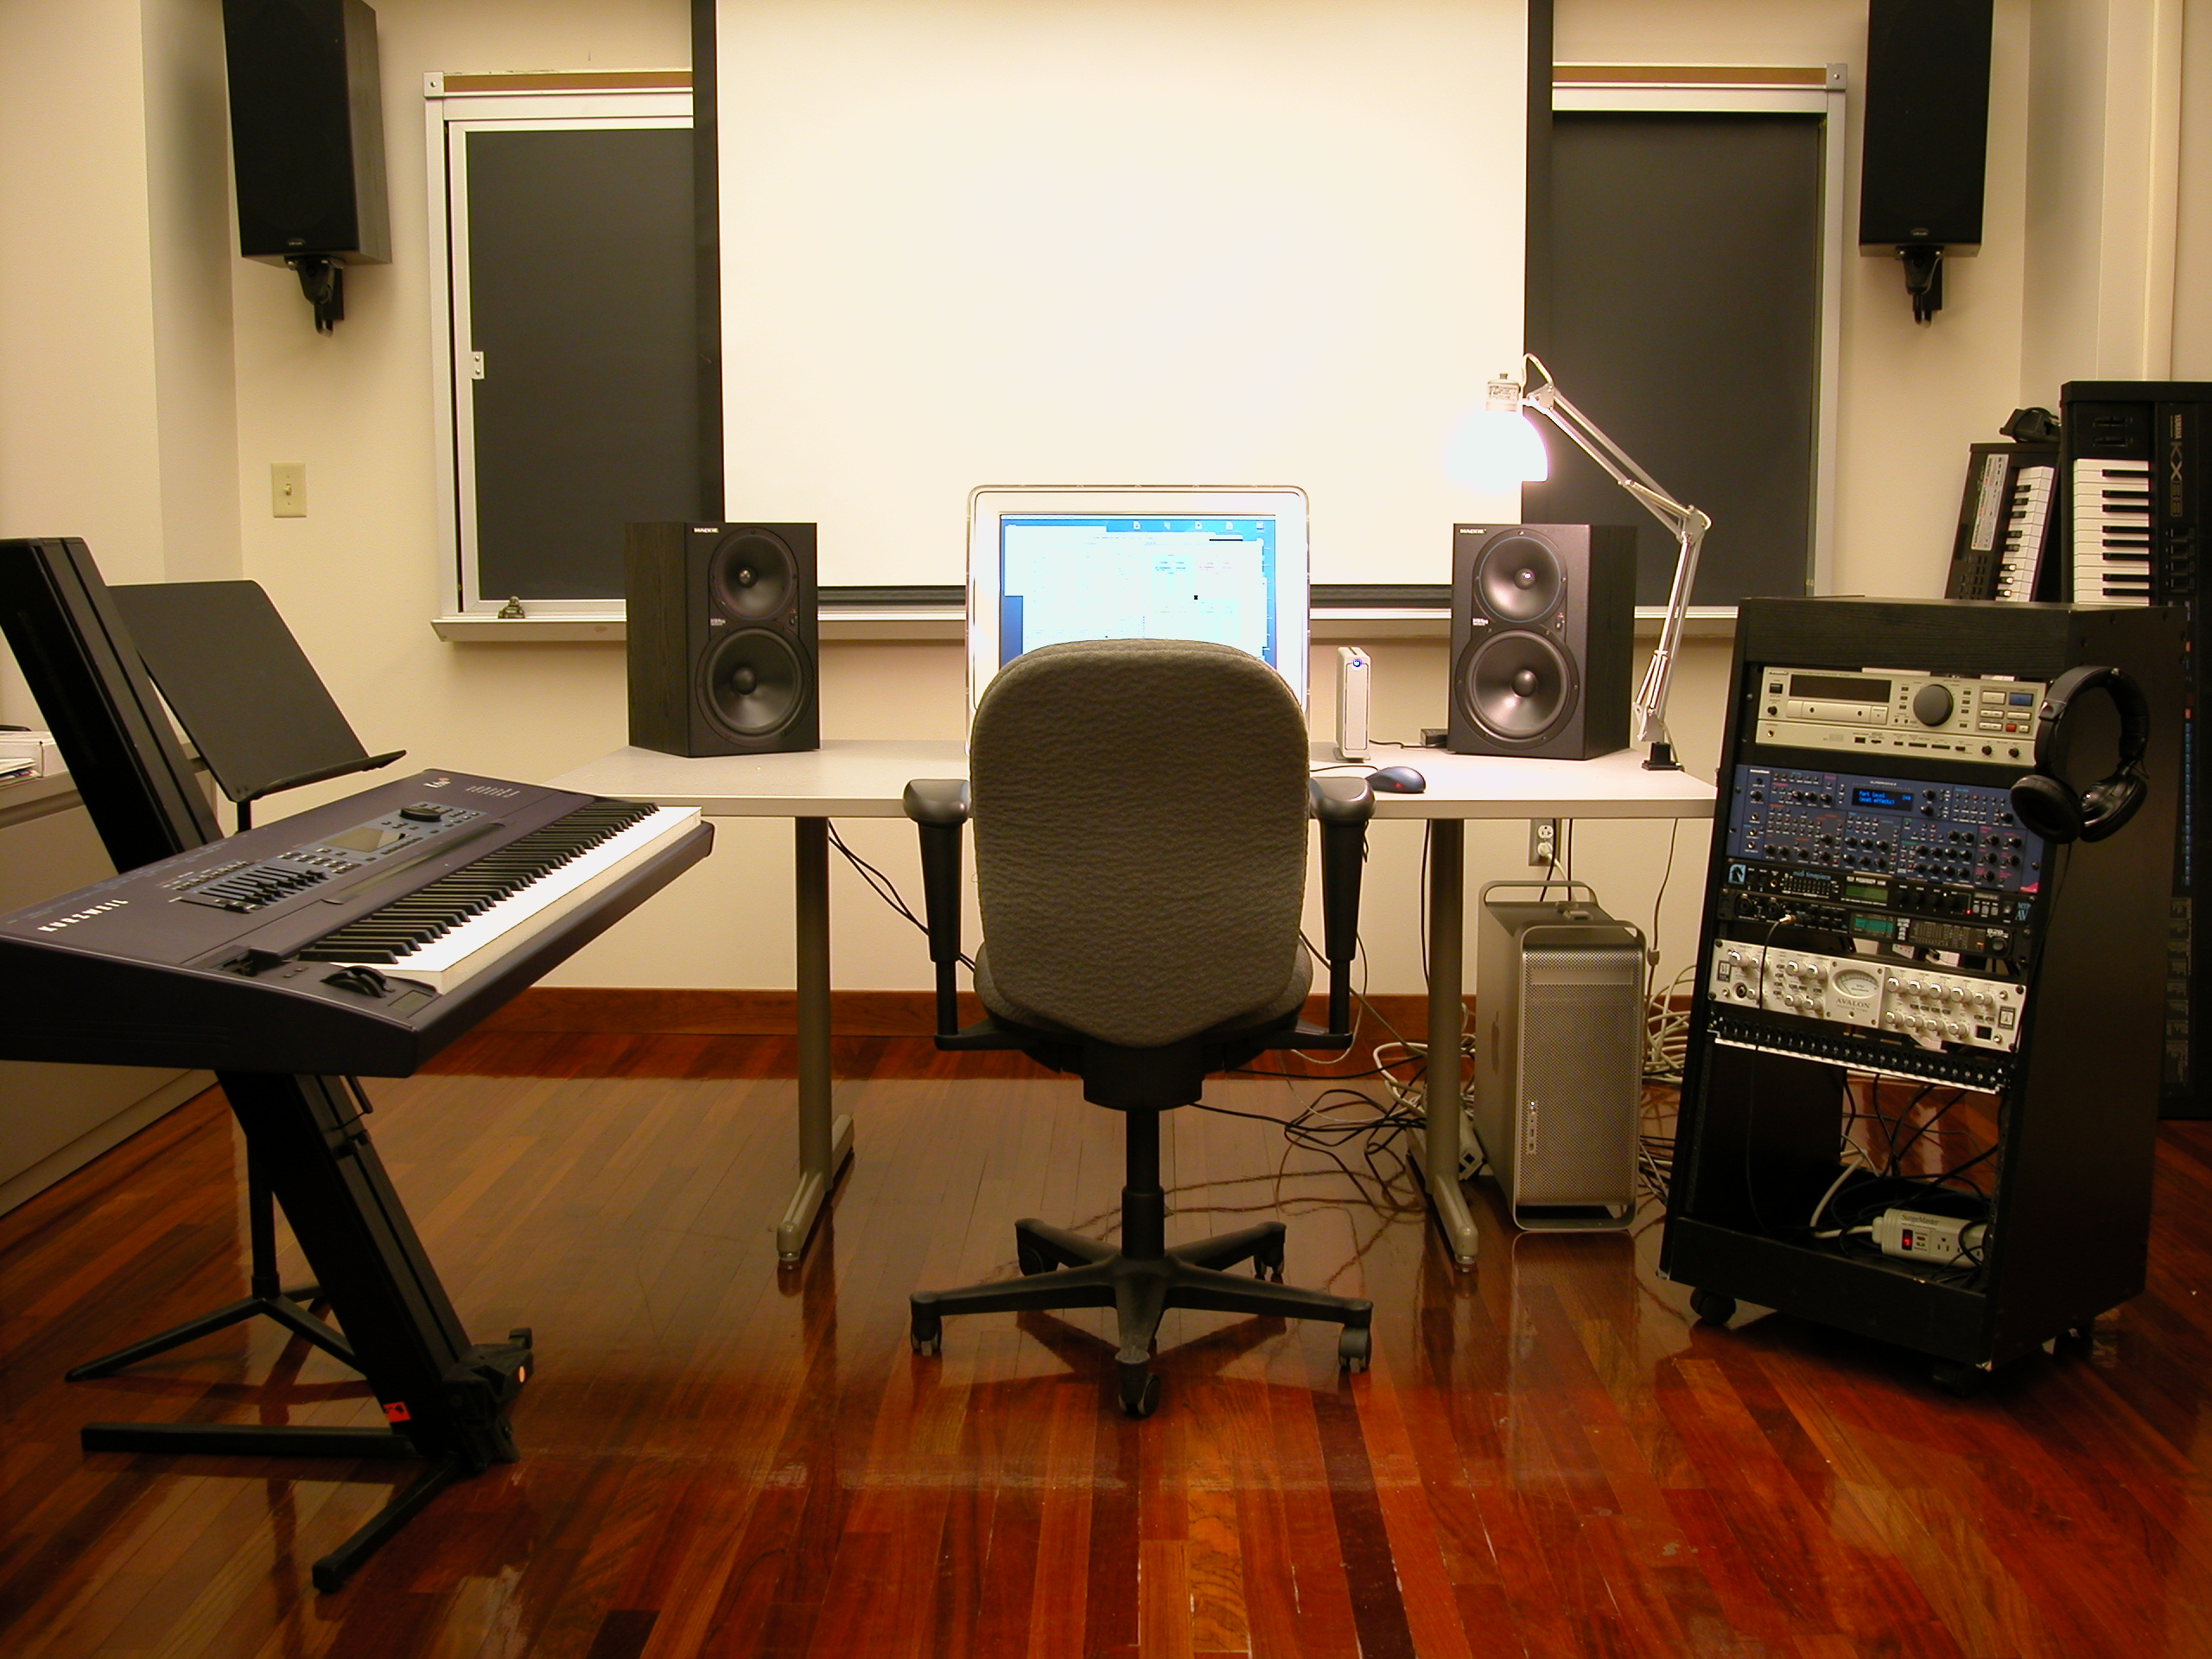 studios cornell electroacoustic music center